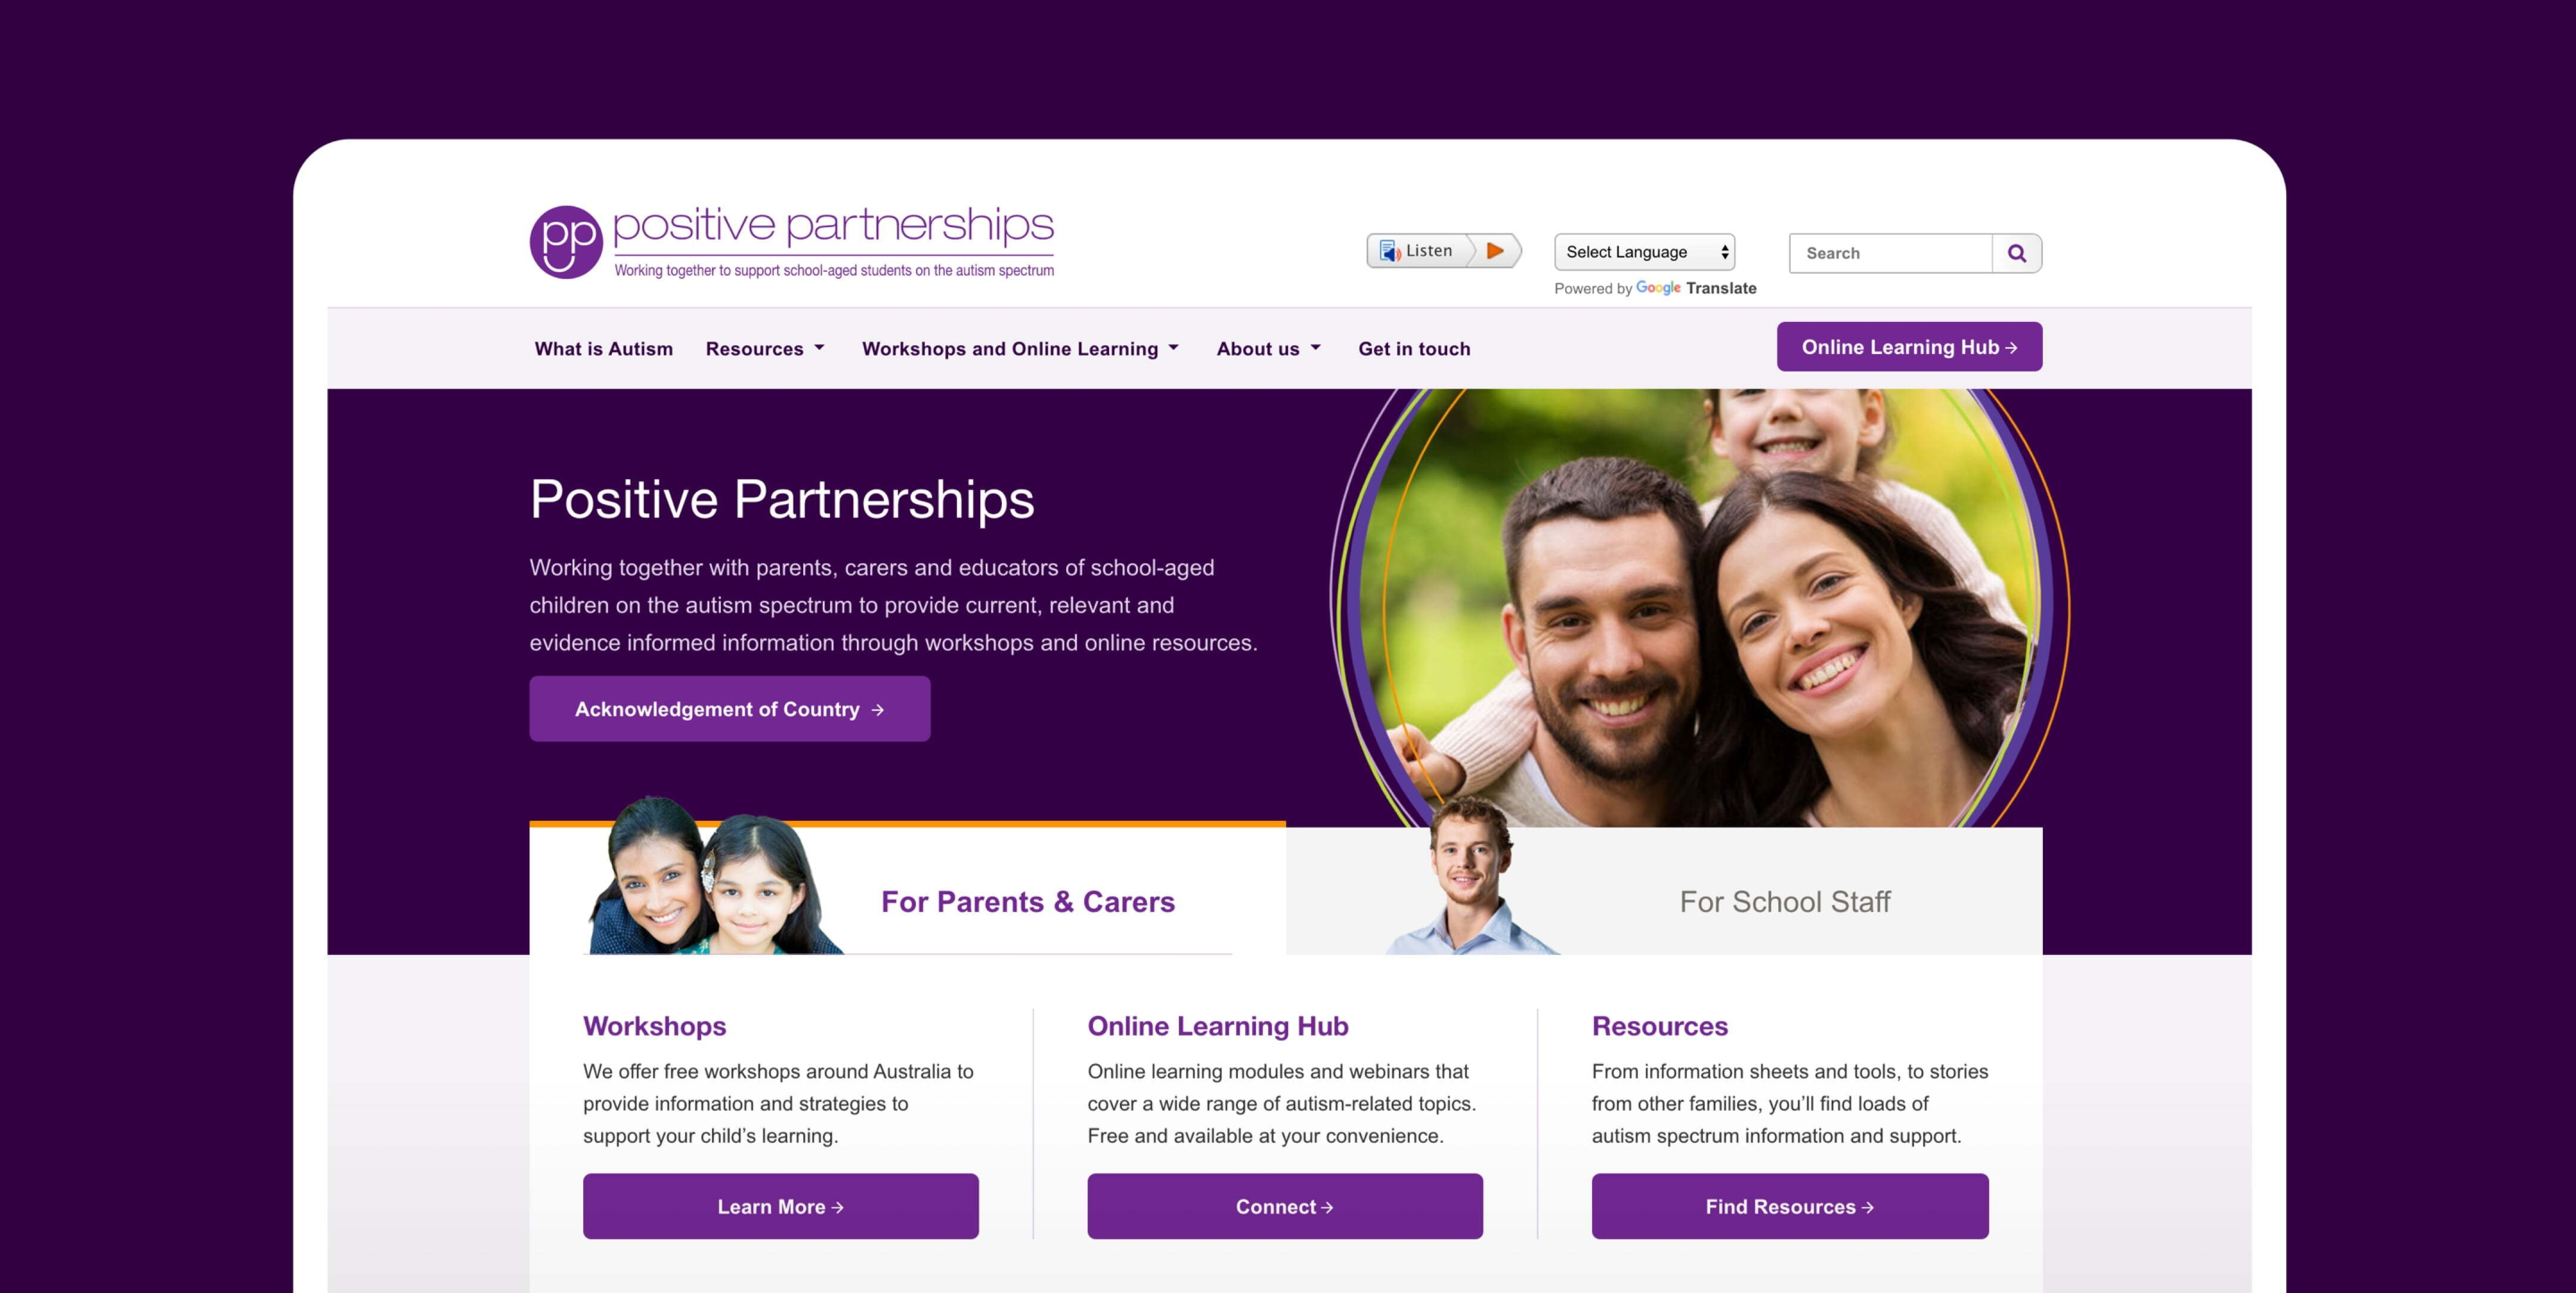 Positive Partnerships home page